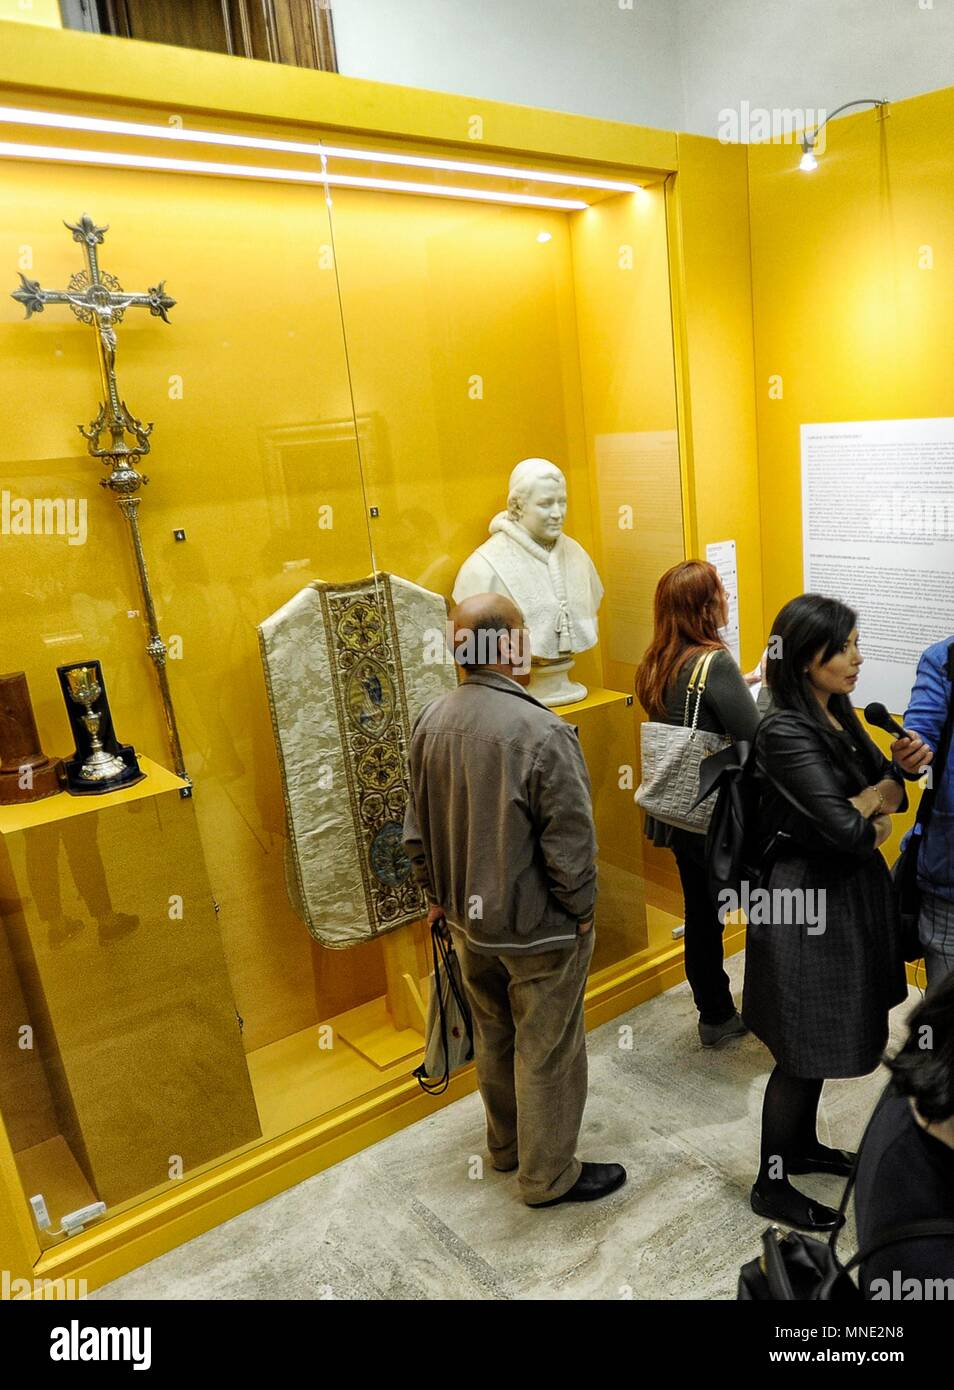 Rome, Capitoline Museums shows the Popes in the Councils of the Modern Era. *** NO WEB *** NO DAILY *** - Stock Image